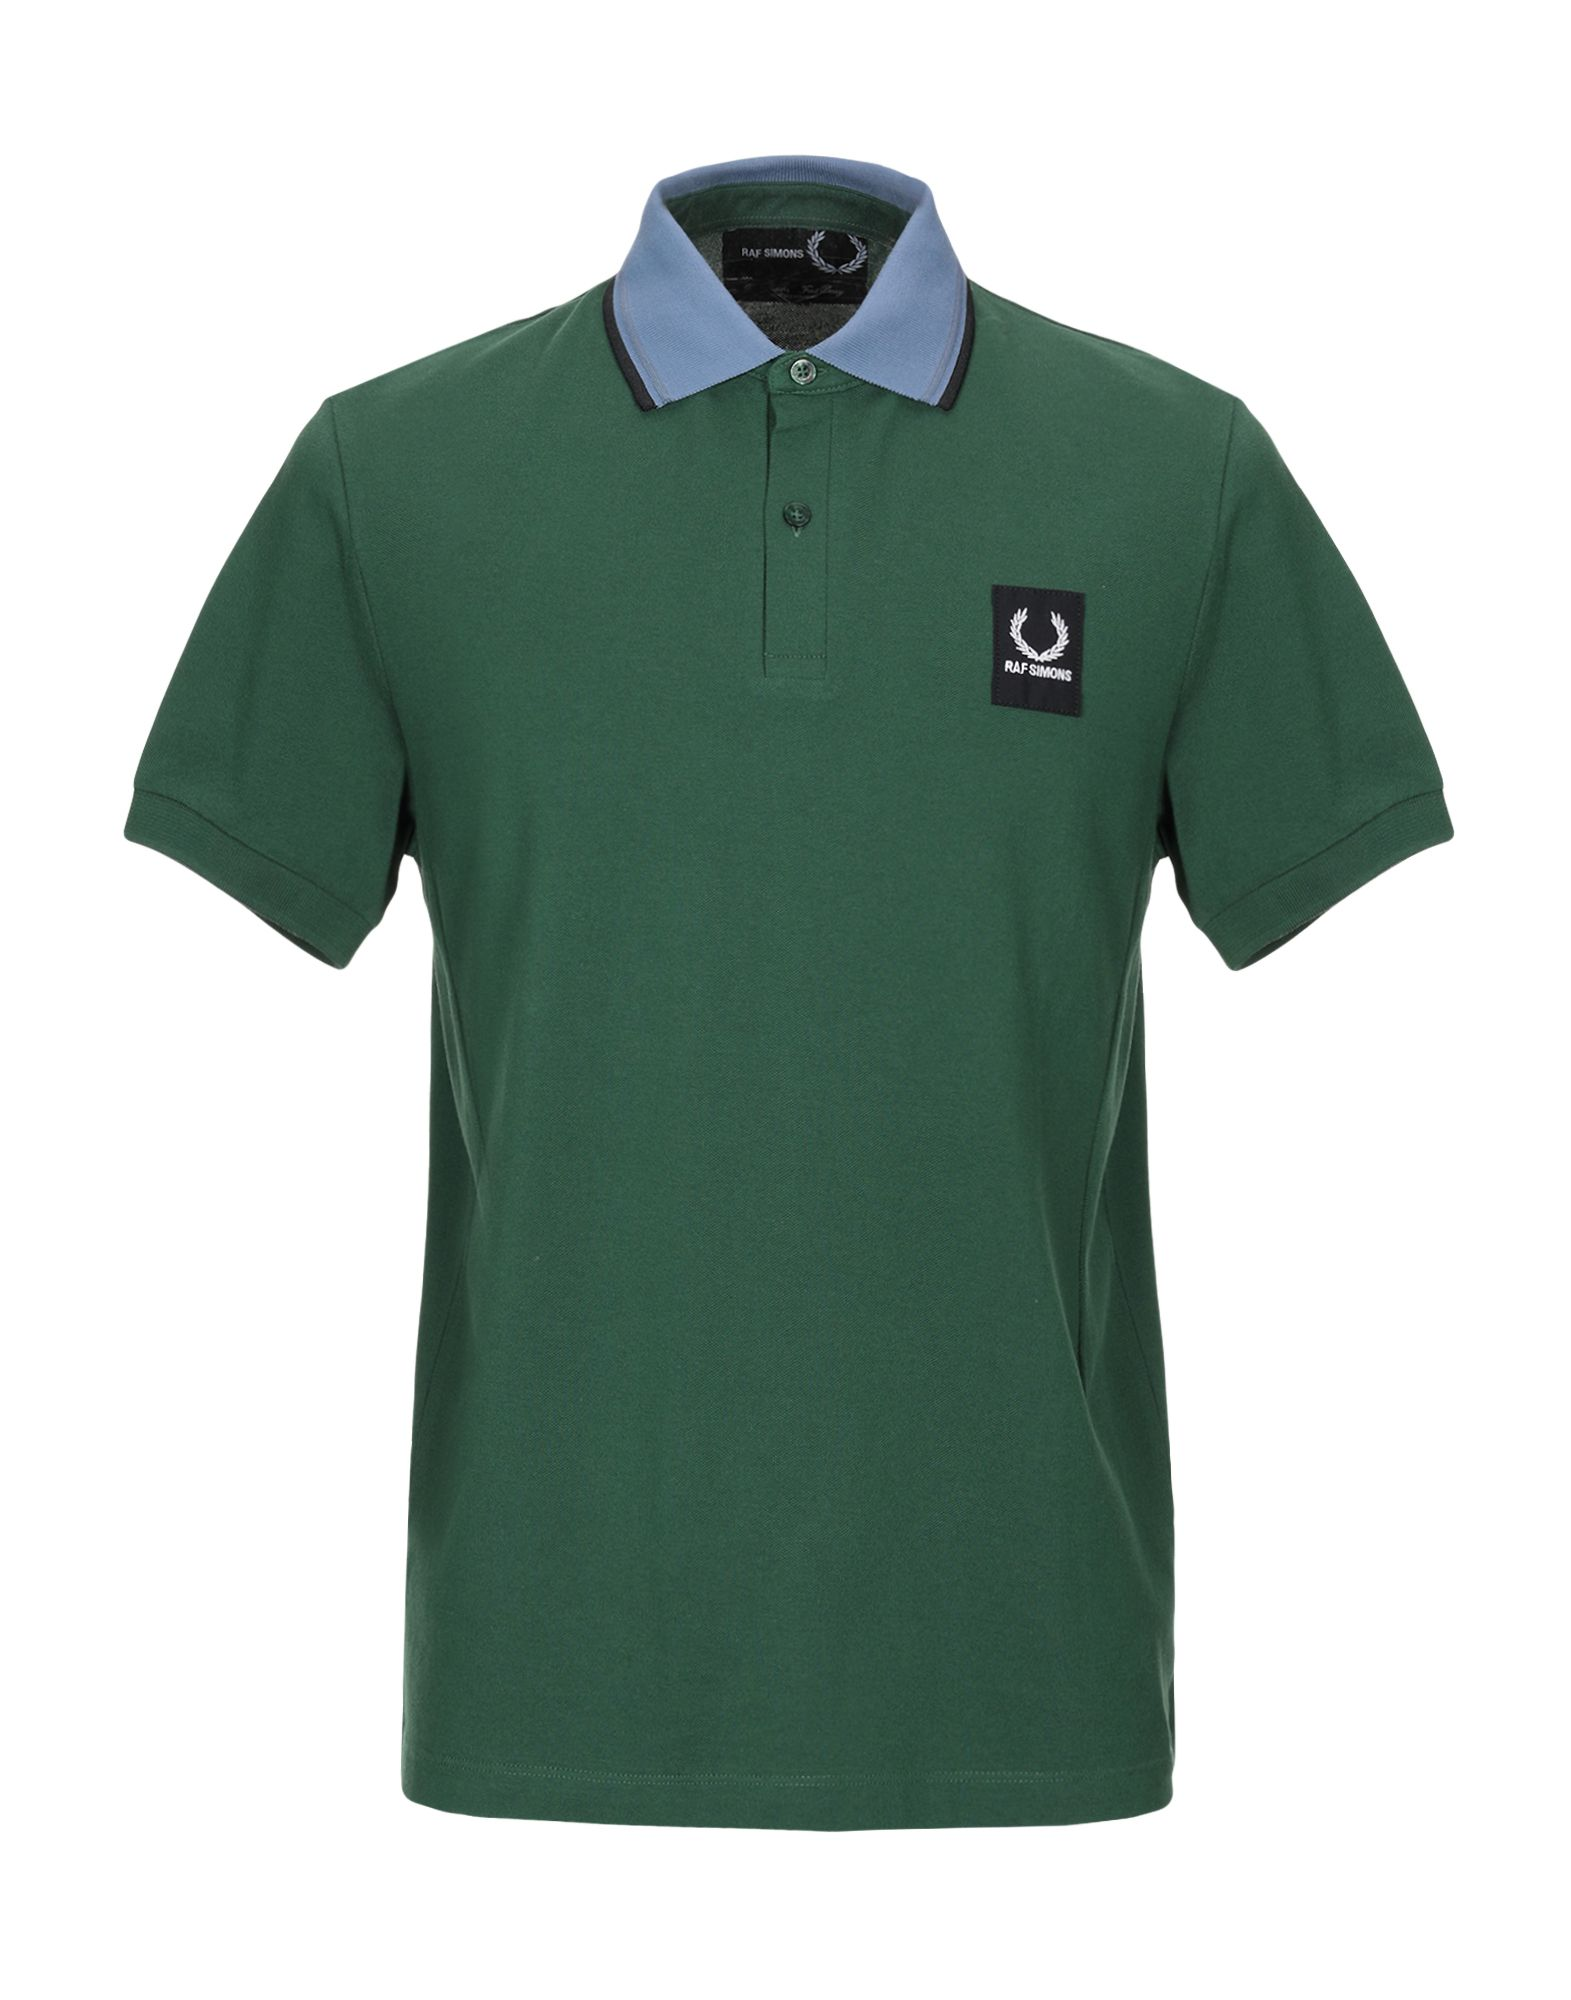 RAF SIMONS FRED PERRY Поло fred perry поло